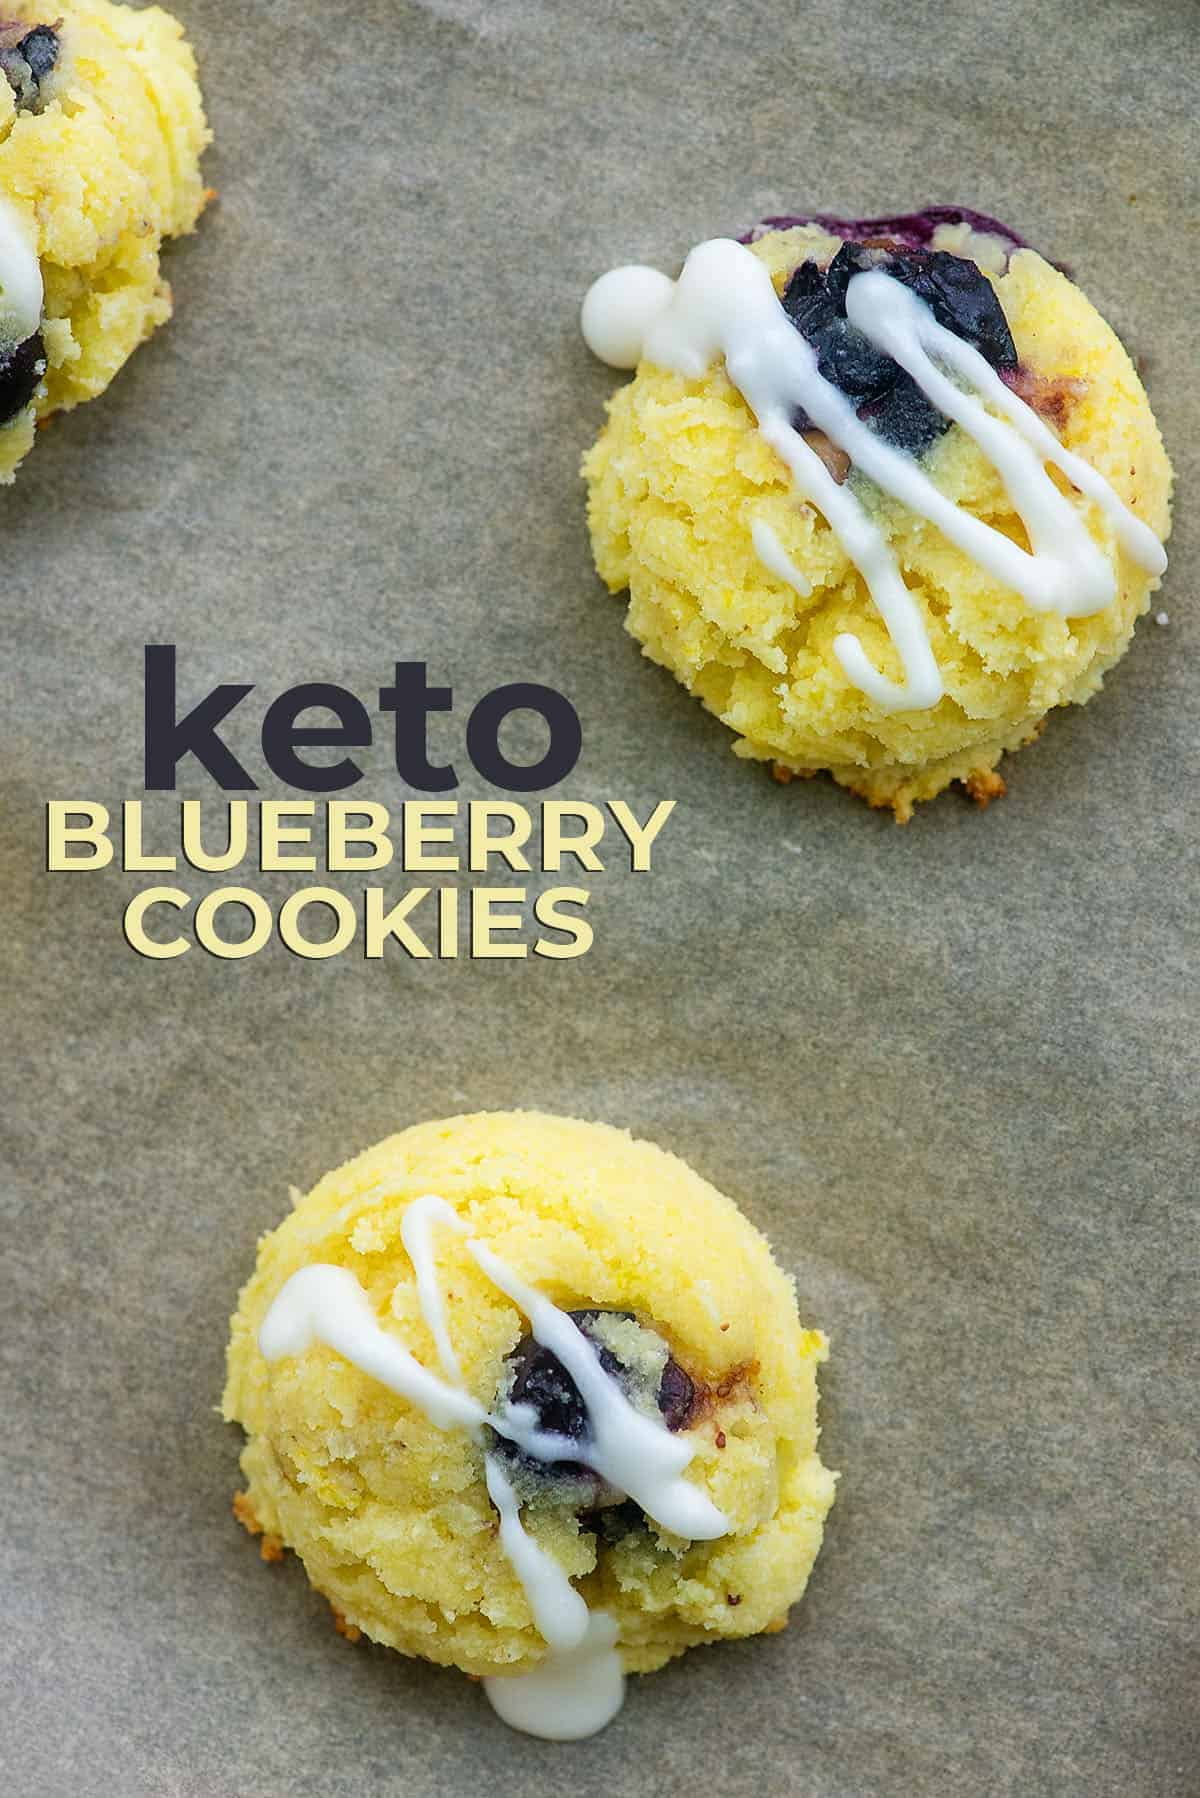 keto lemon cookies with blueberries and glaze